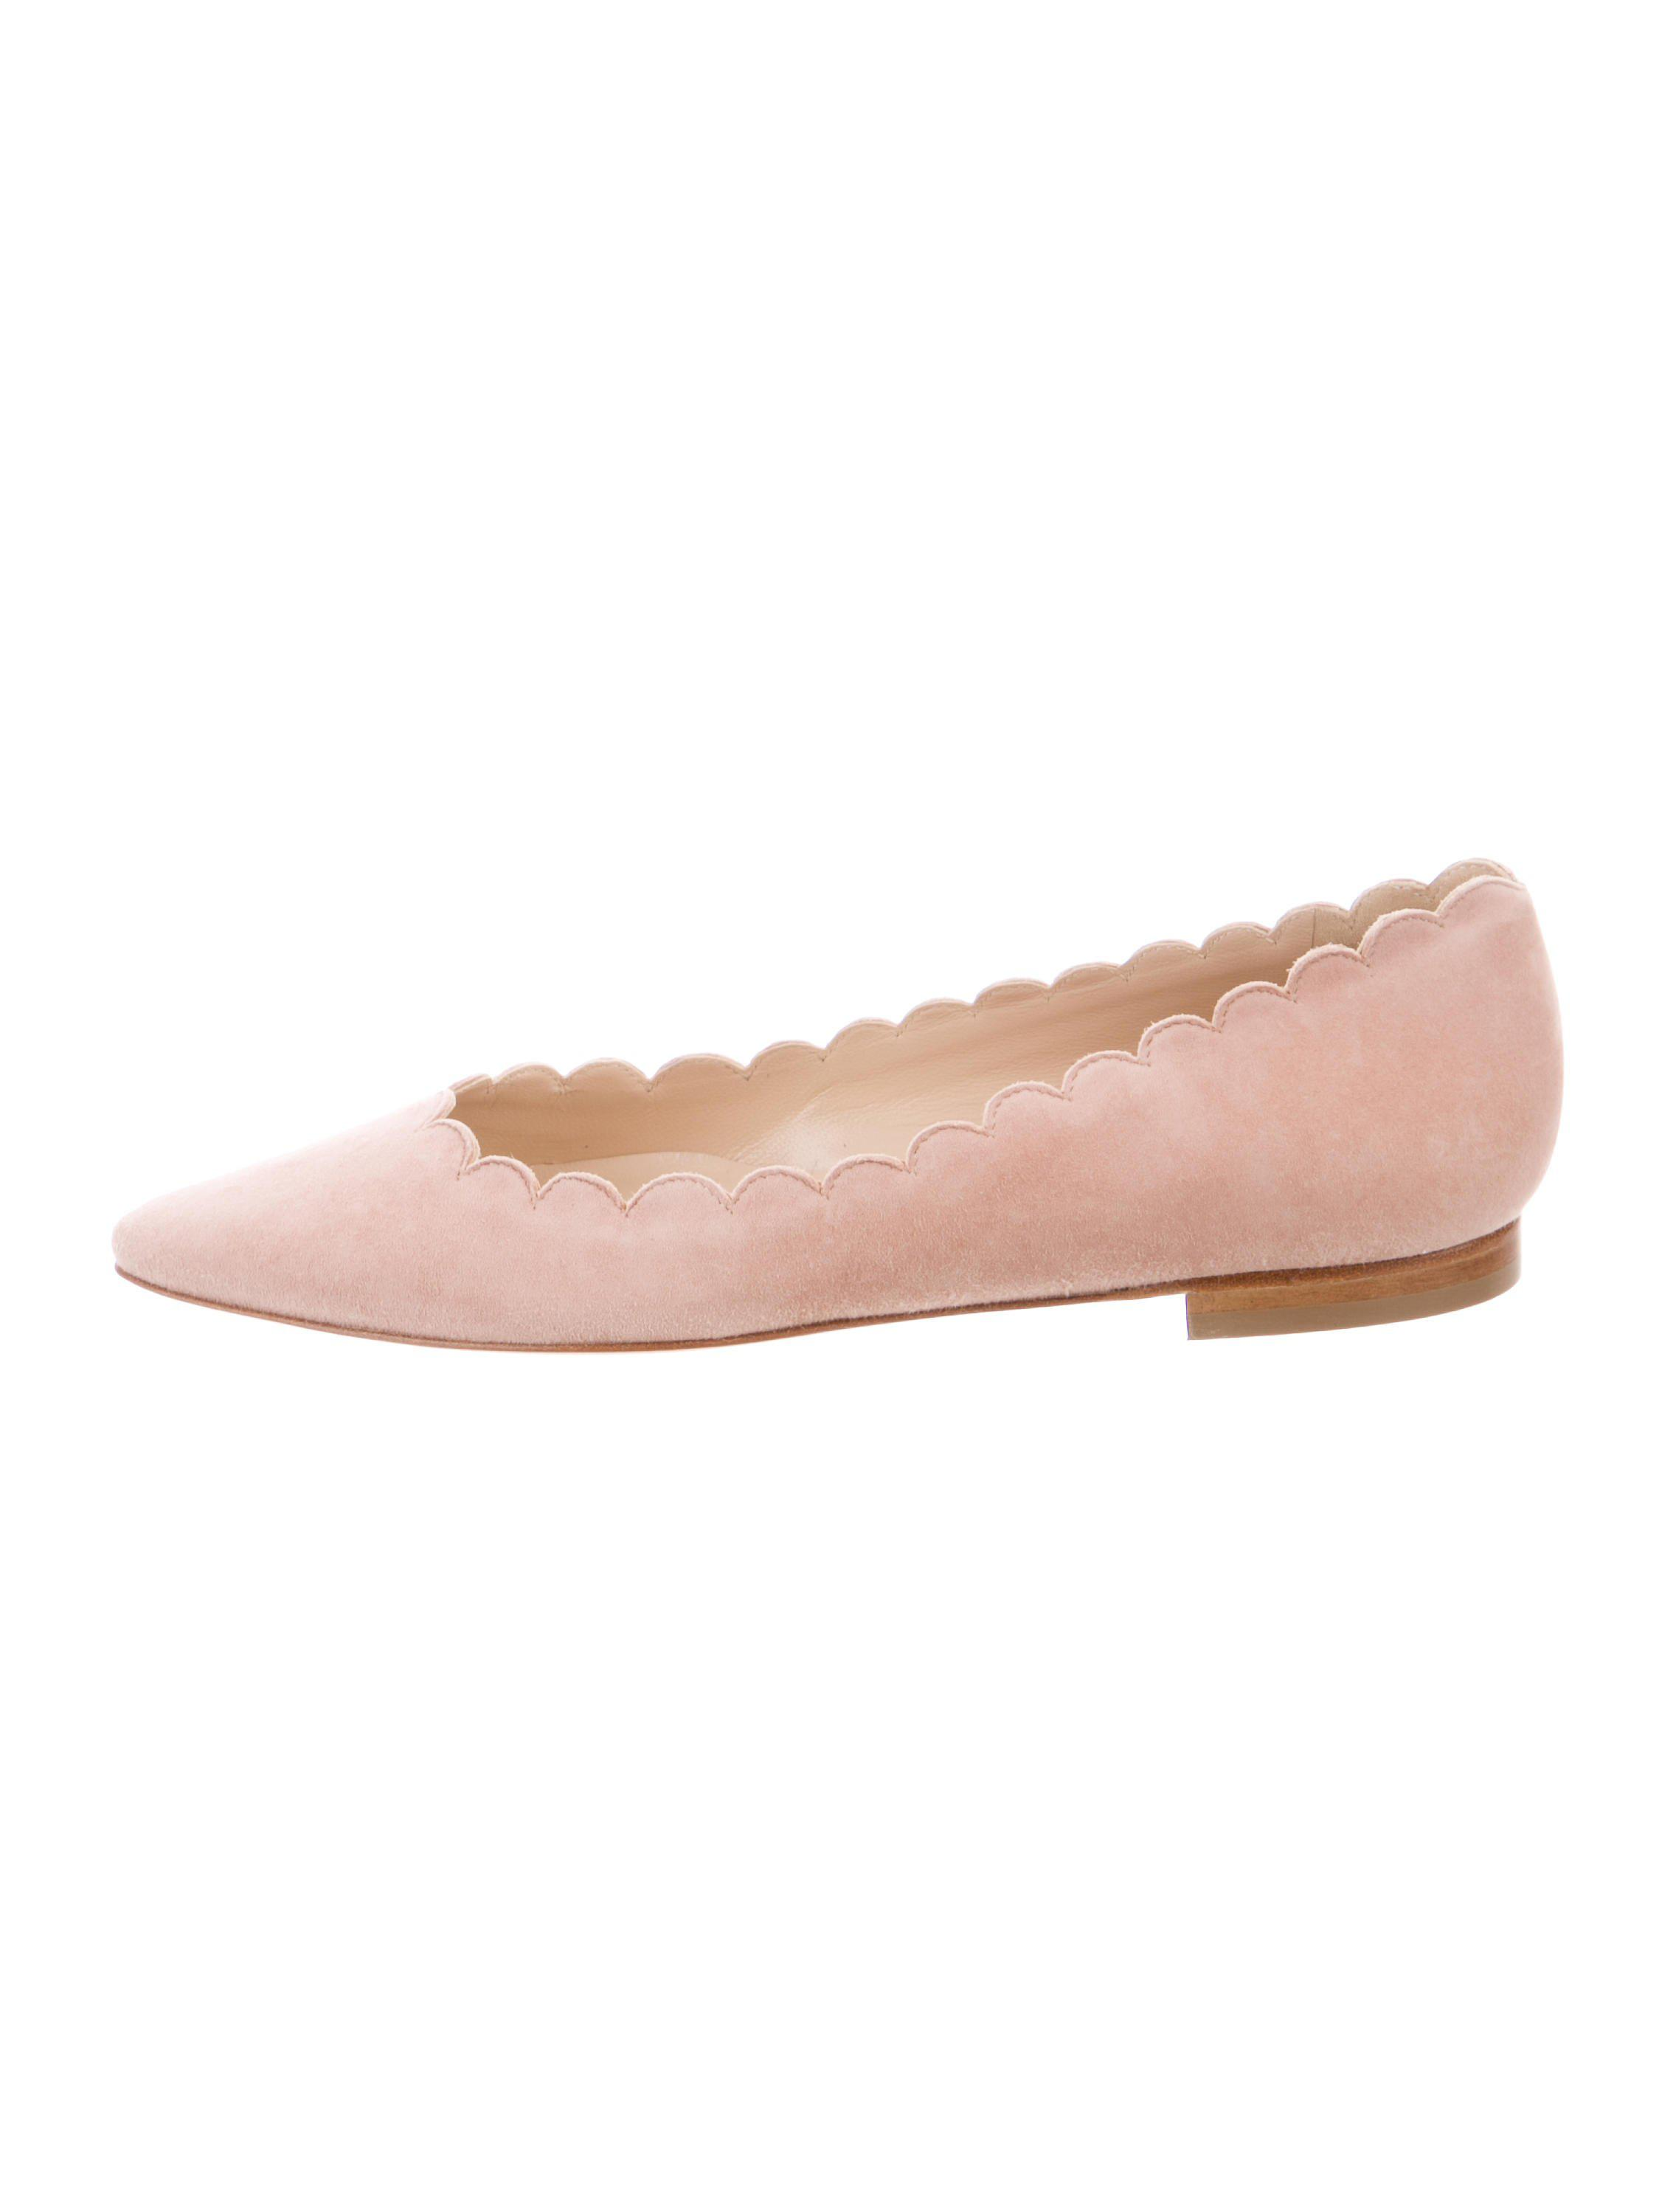 Manolo Blahnik Suede Scalloped Flats w/ Tags cheap sale pictures sale online store affordable for sale discount geniue stockist buy cheap with credit card ylPYSVL